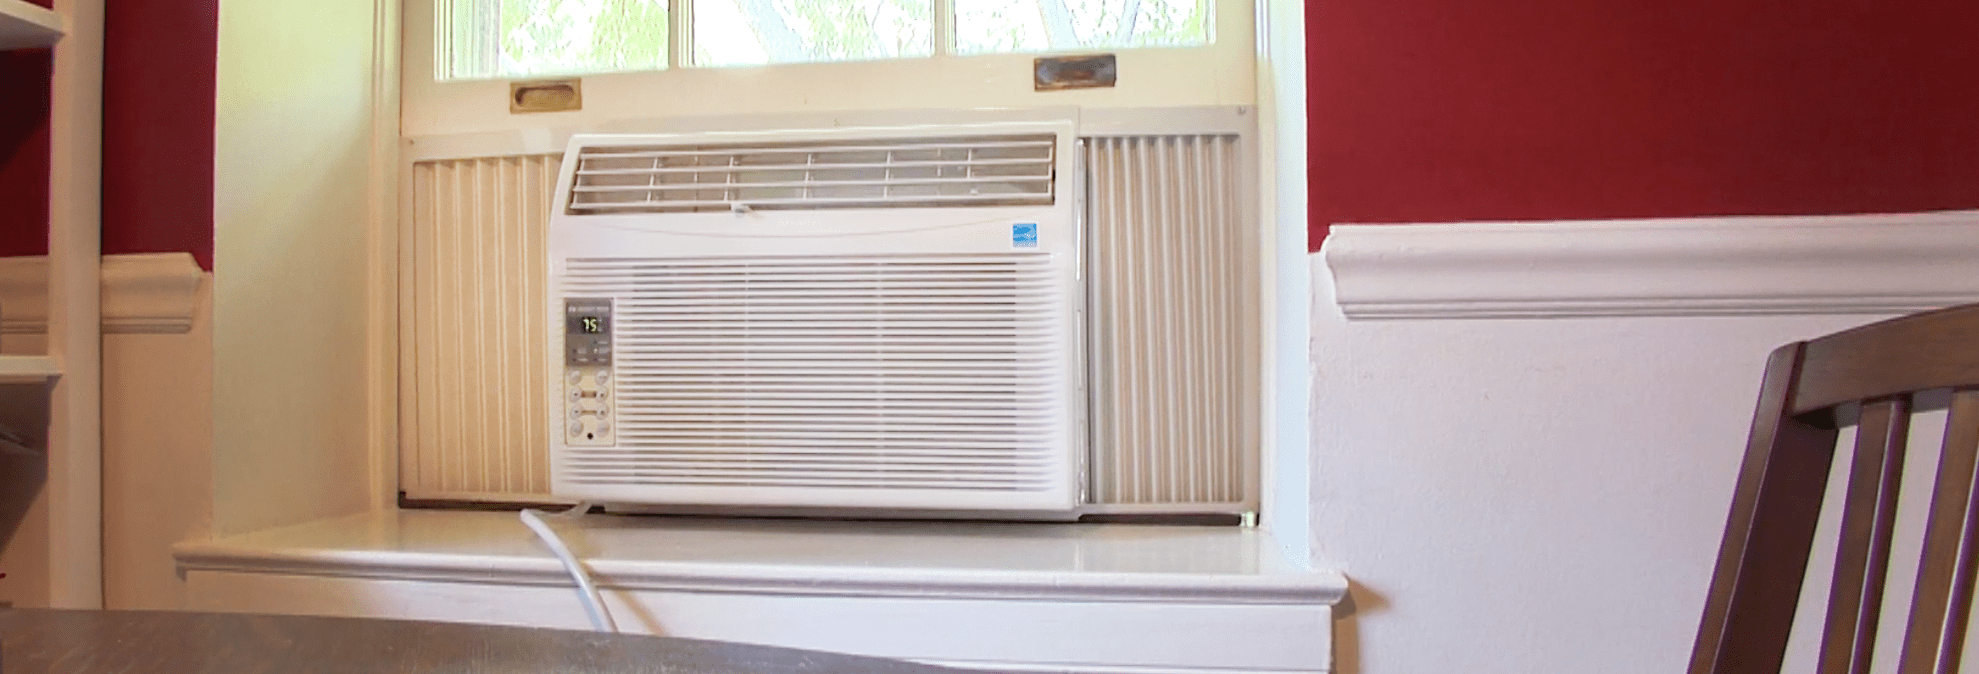 How to Properly Size a Window Air Conditioner Window air